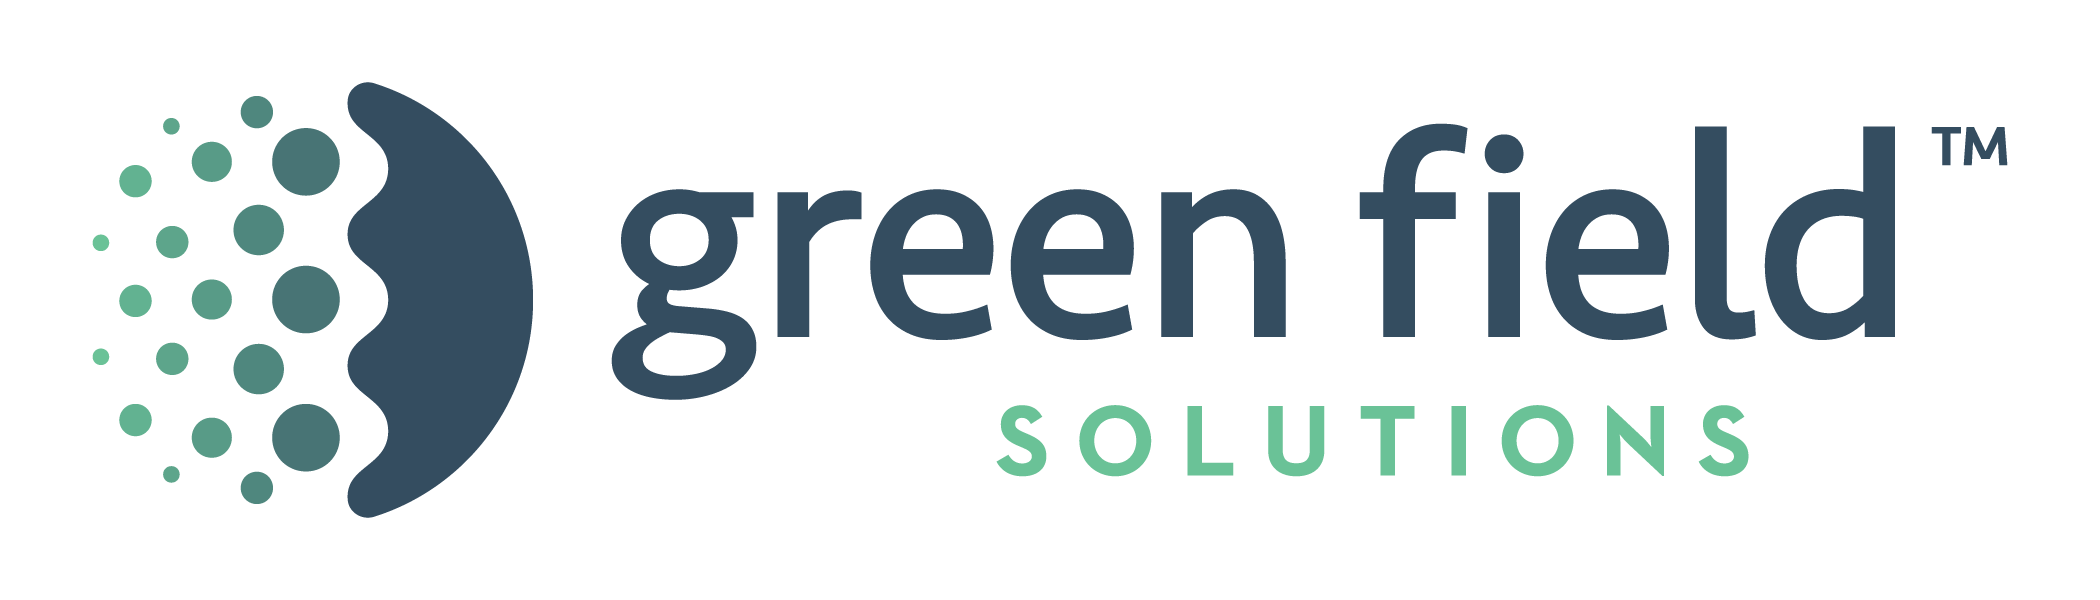 Greenfield Solutions